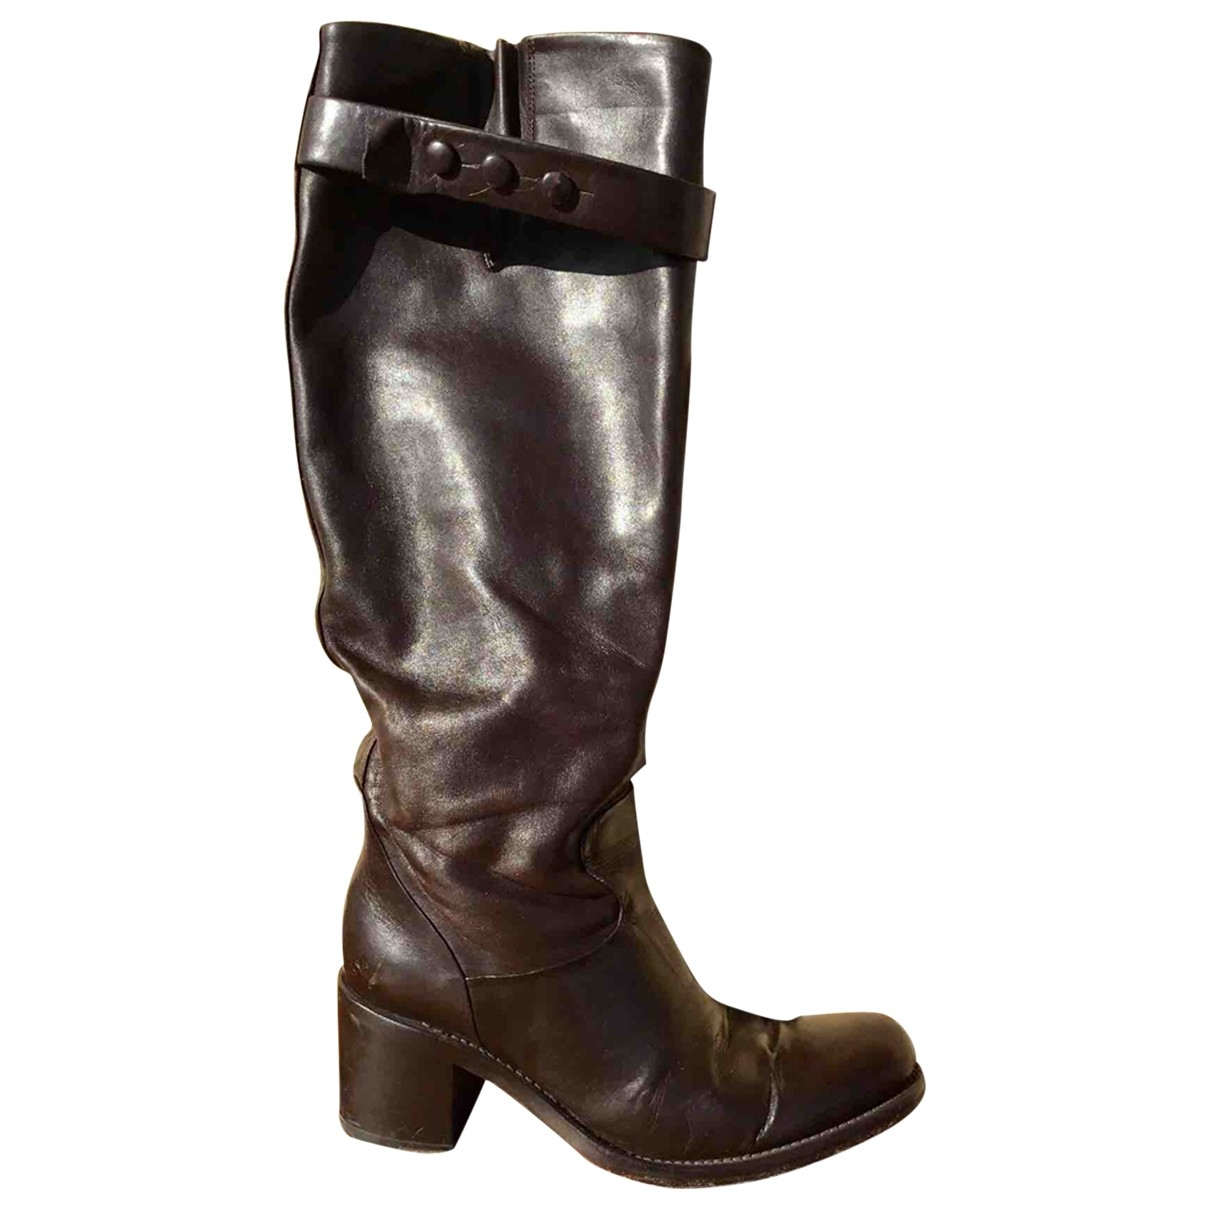 Free Lance Geronimo Brown Leather Boots for Women 36 EU